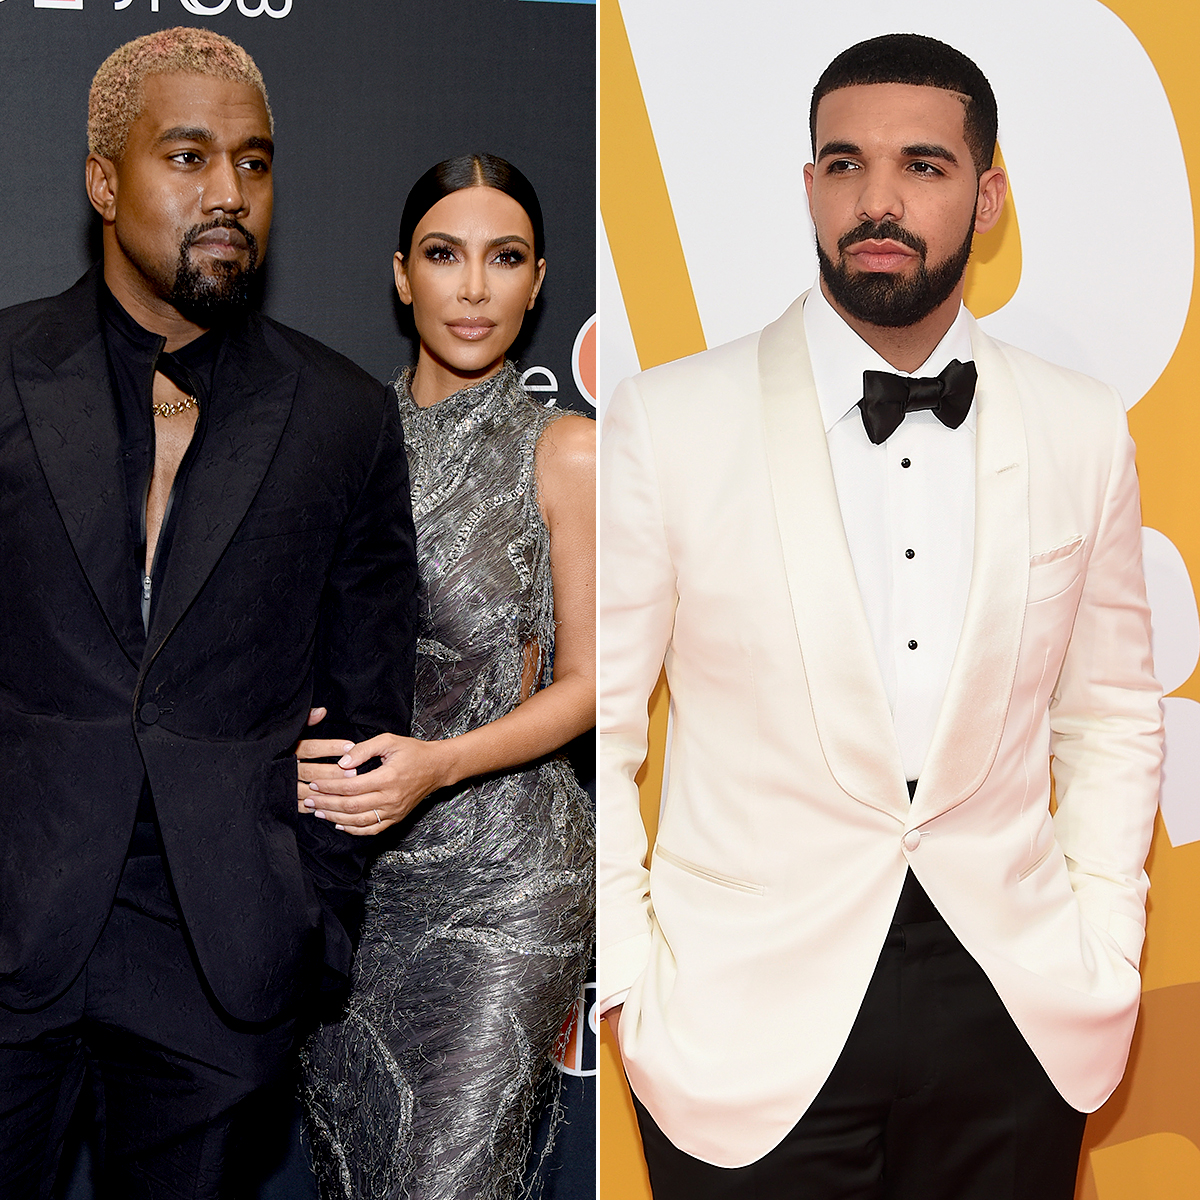 8796ecc21db2 Kanye West vs Drake Feud: Everything to Know About Their Beef